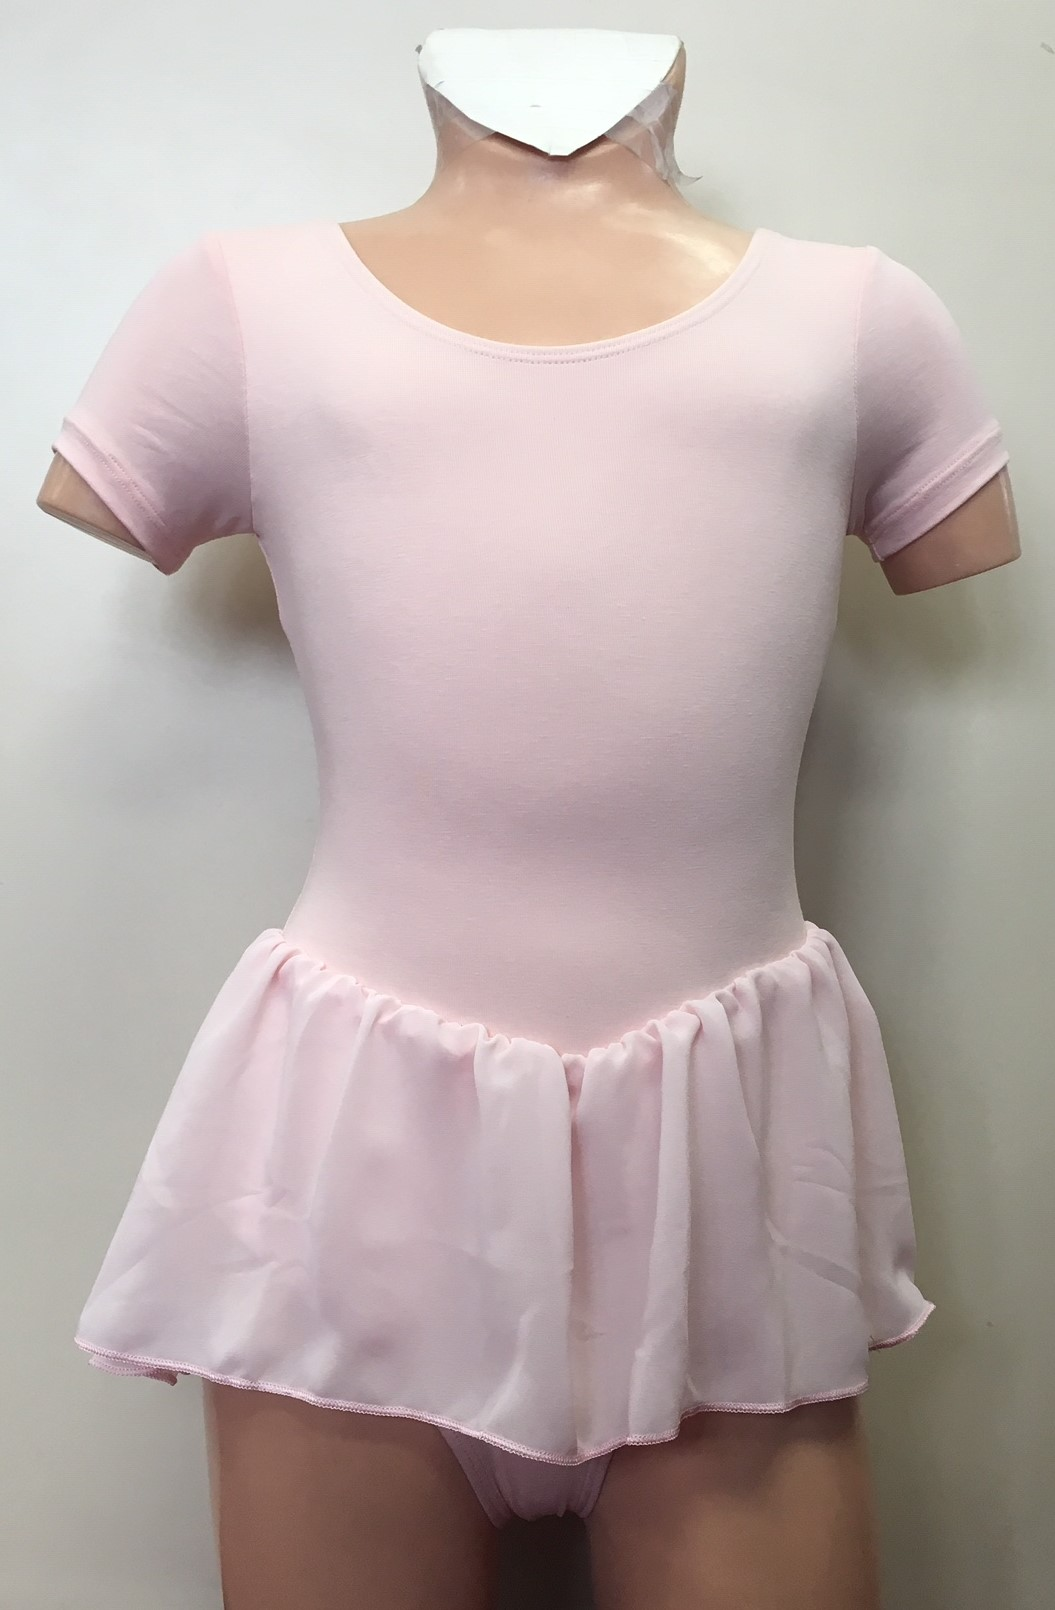 Bloch Children's Skirted Sleeved Dress